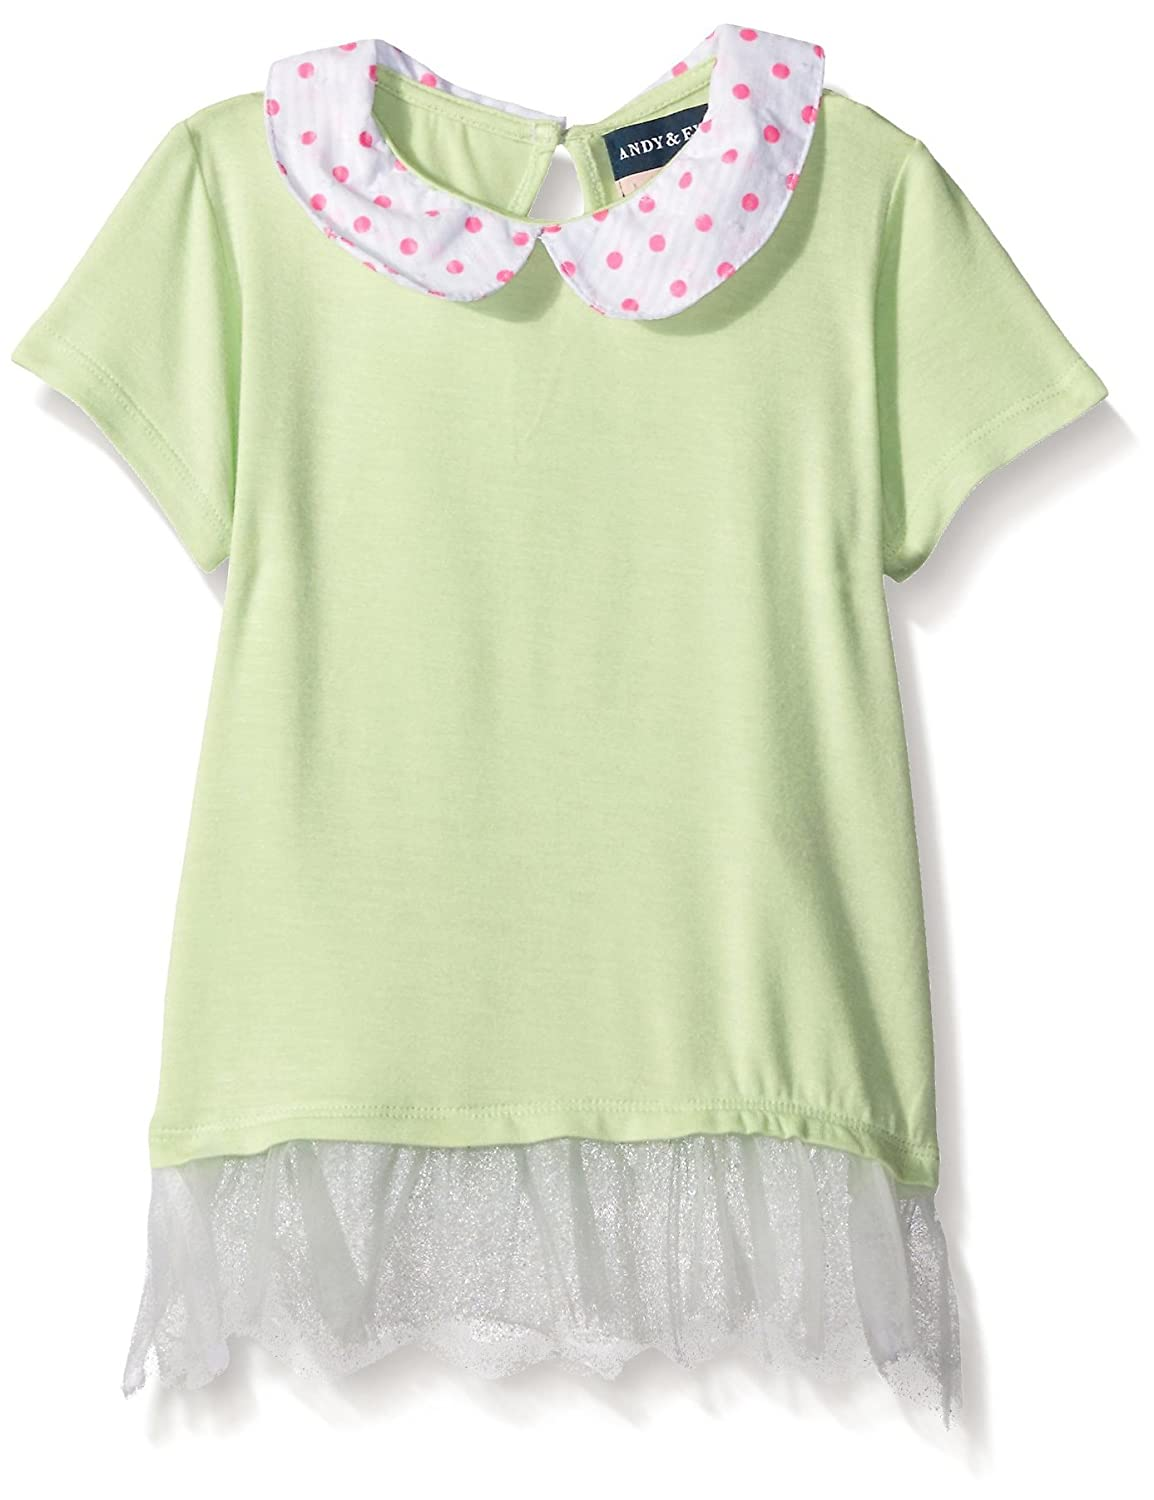 Andy & Evan New Little Girls' Light Green Tunic with Contrasting Trim For Kids - Short Sleeve Dress AG29011B-LGA